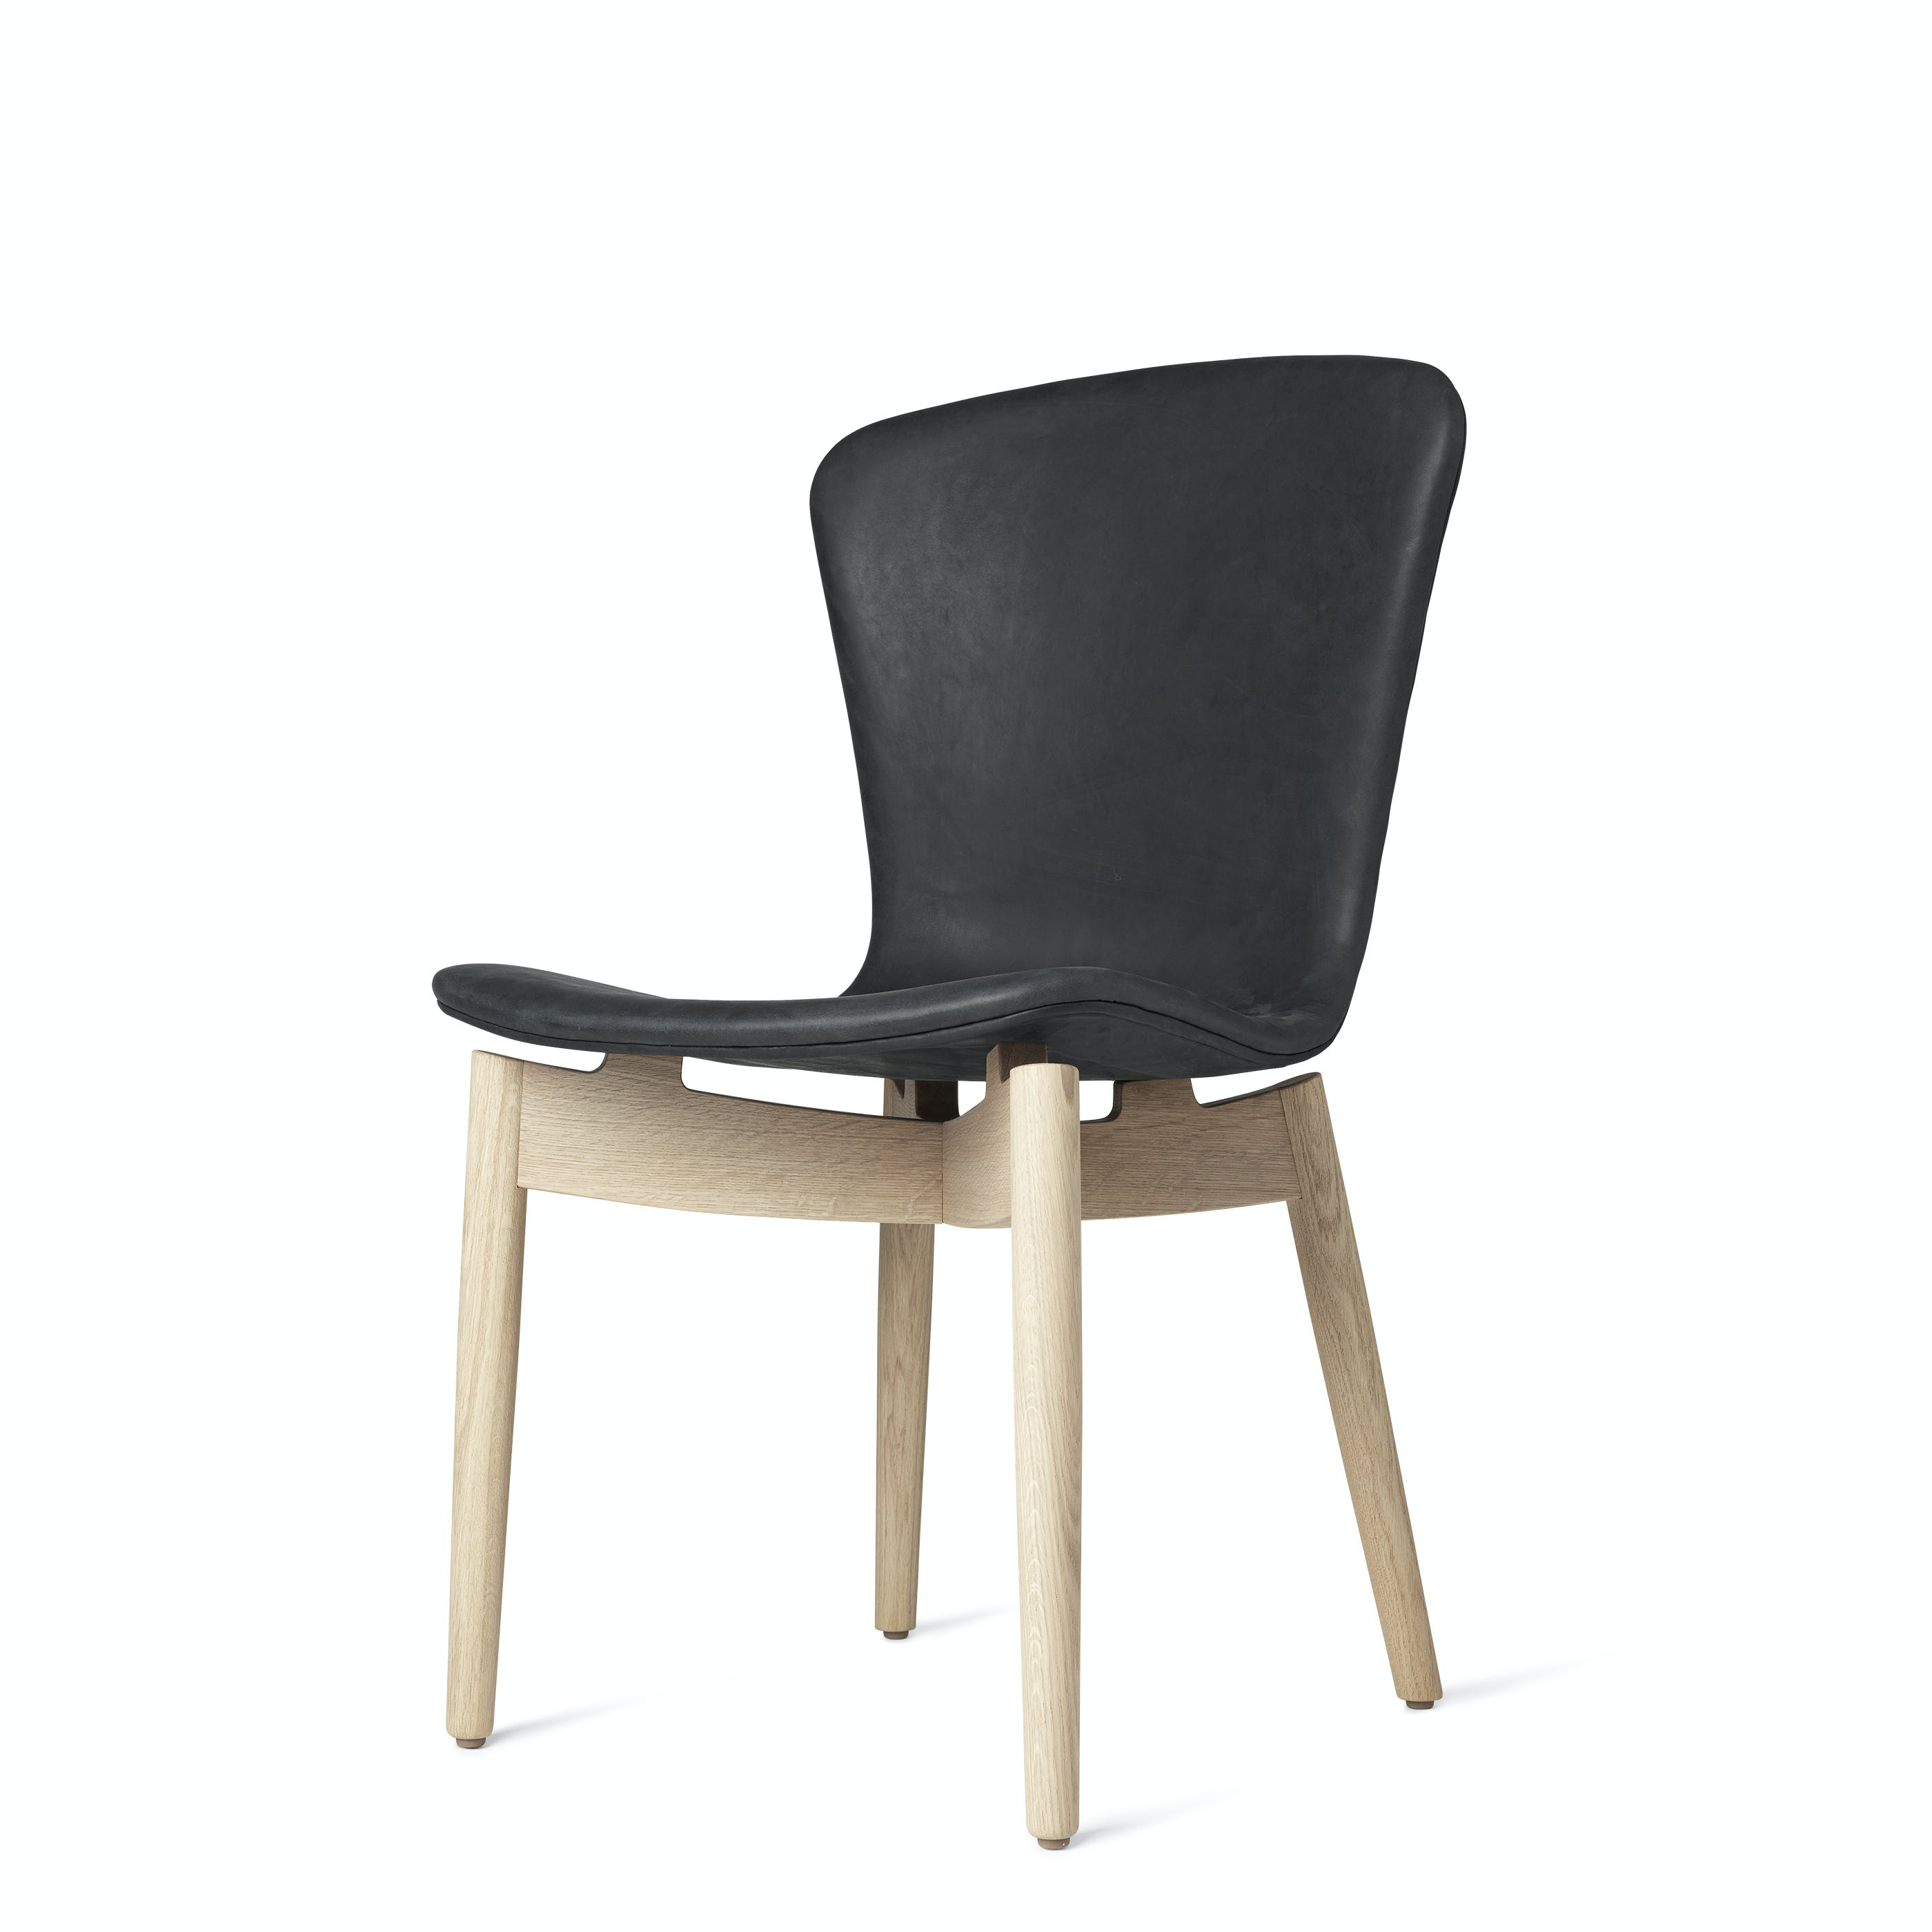 Mater Black Shell Chair Oak Legs Front Angle Haute Living